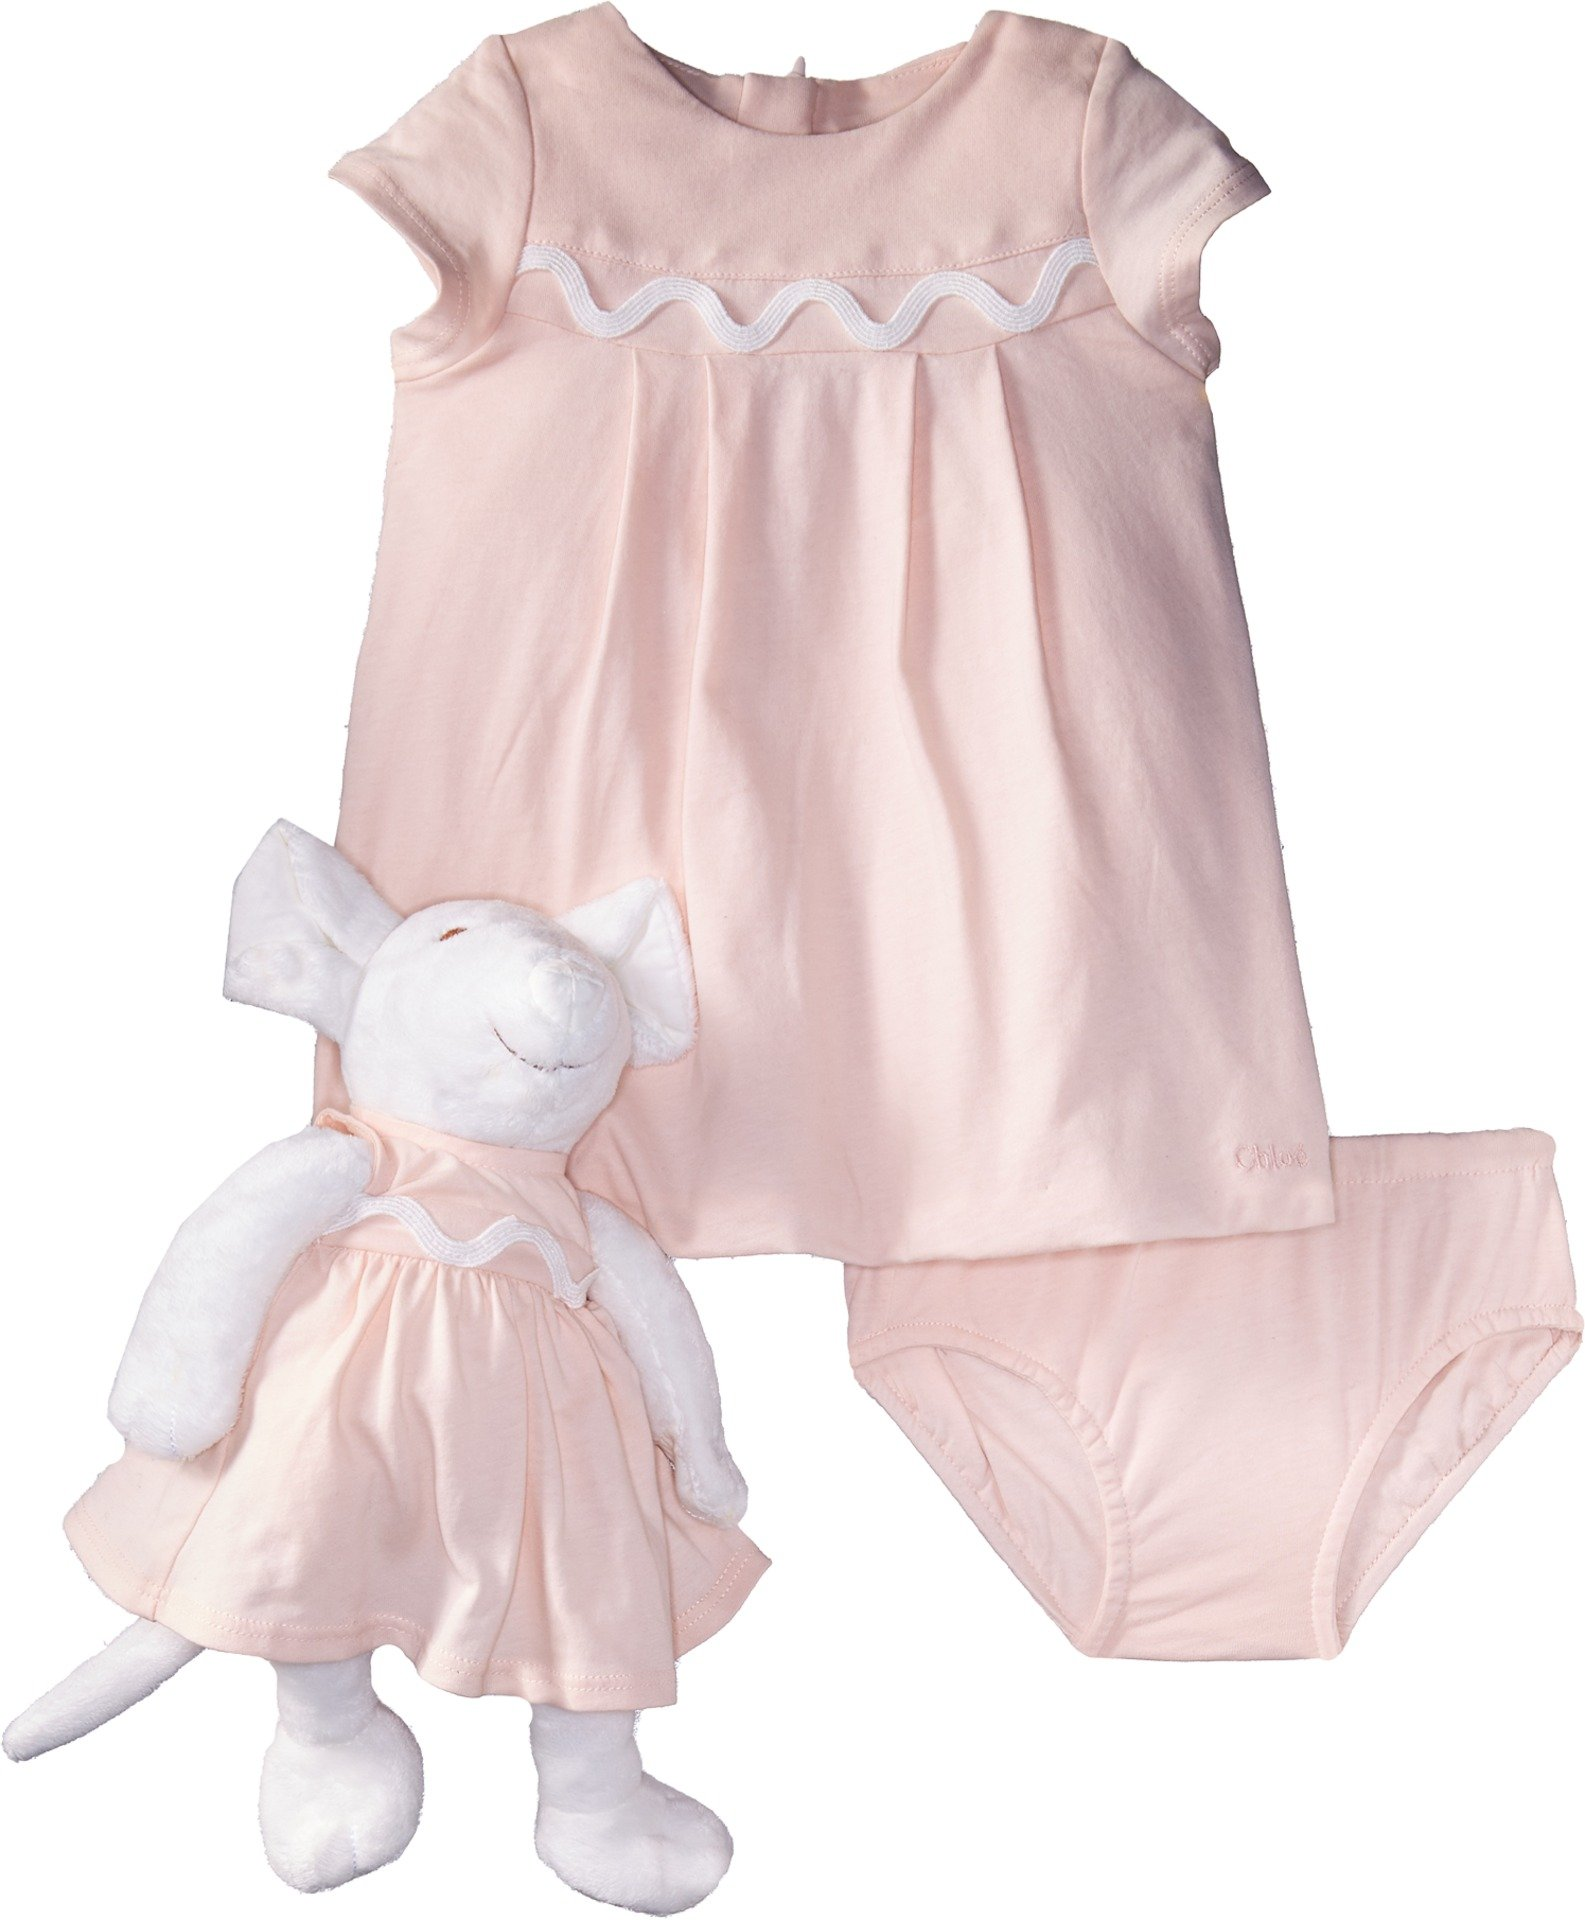 Chloe Kids Baby Girl's Newborn Dress/Bloomer/Mouse Toy Set (Infant) Rose Pale Suit